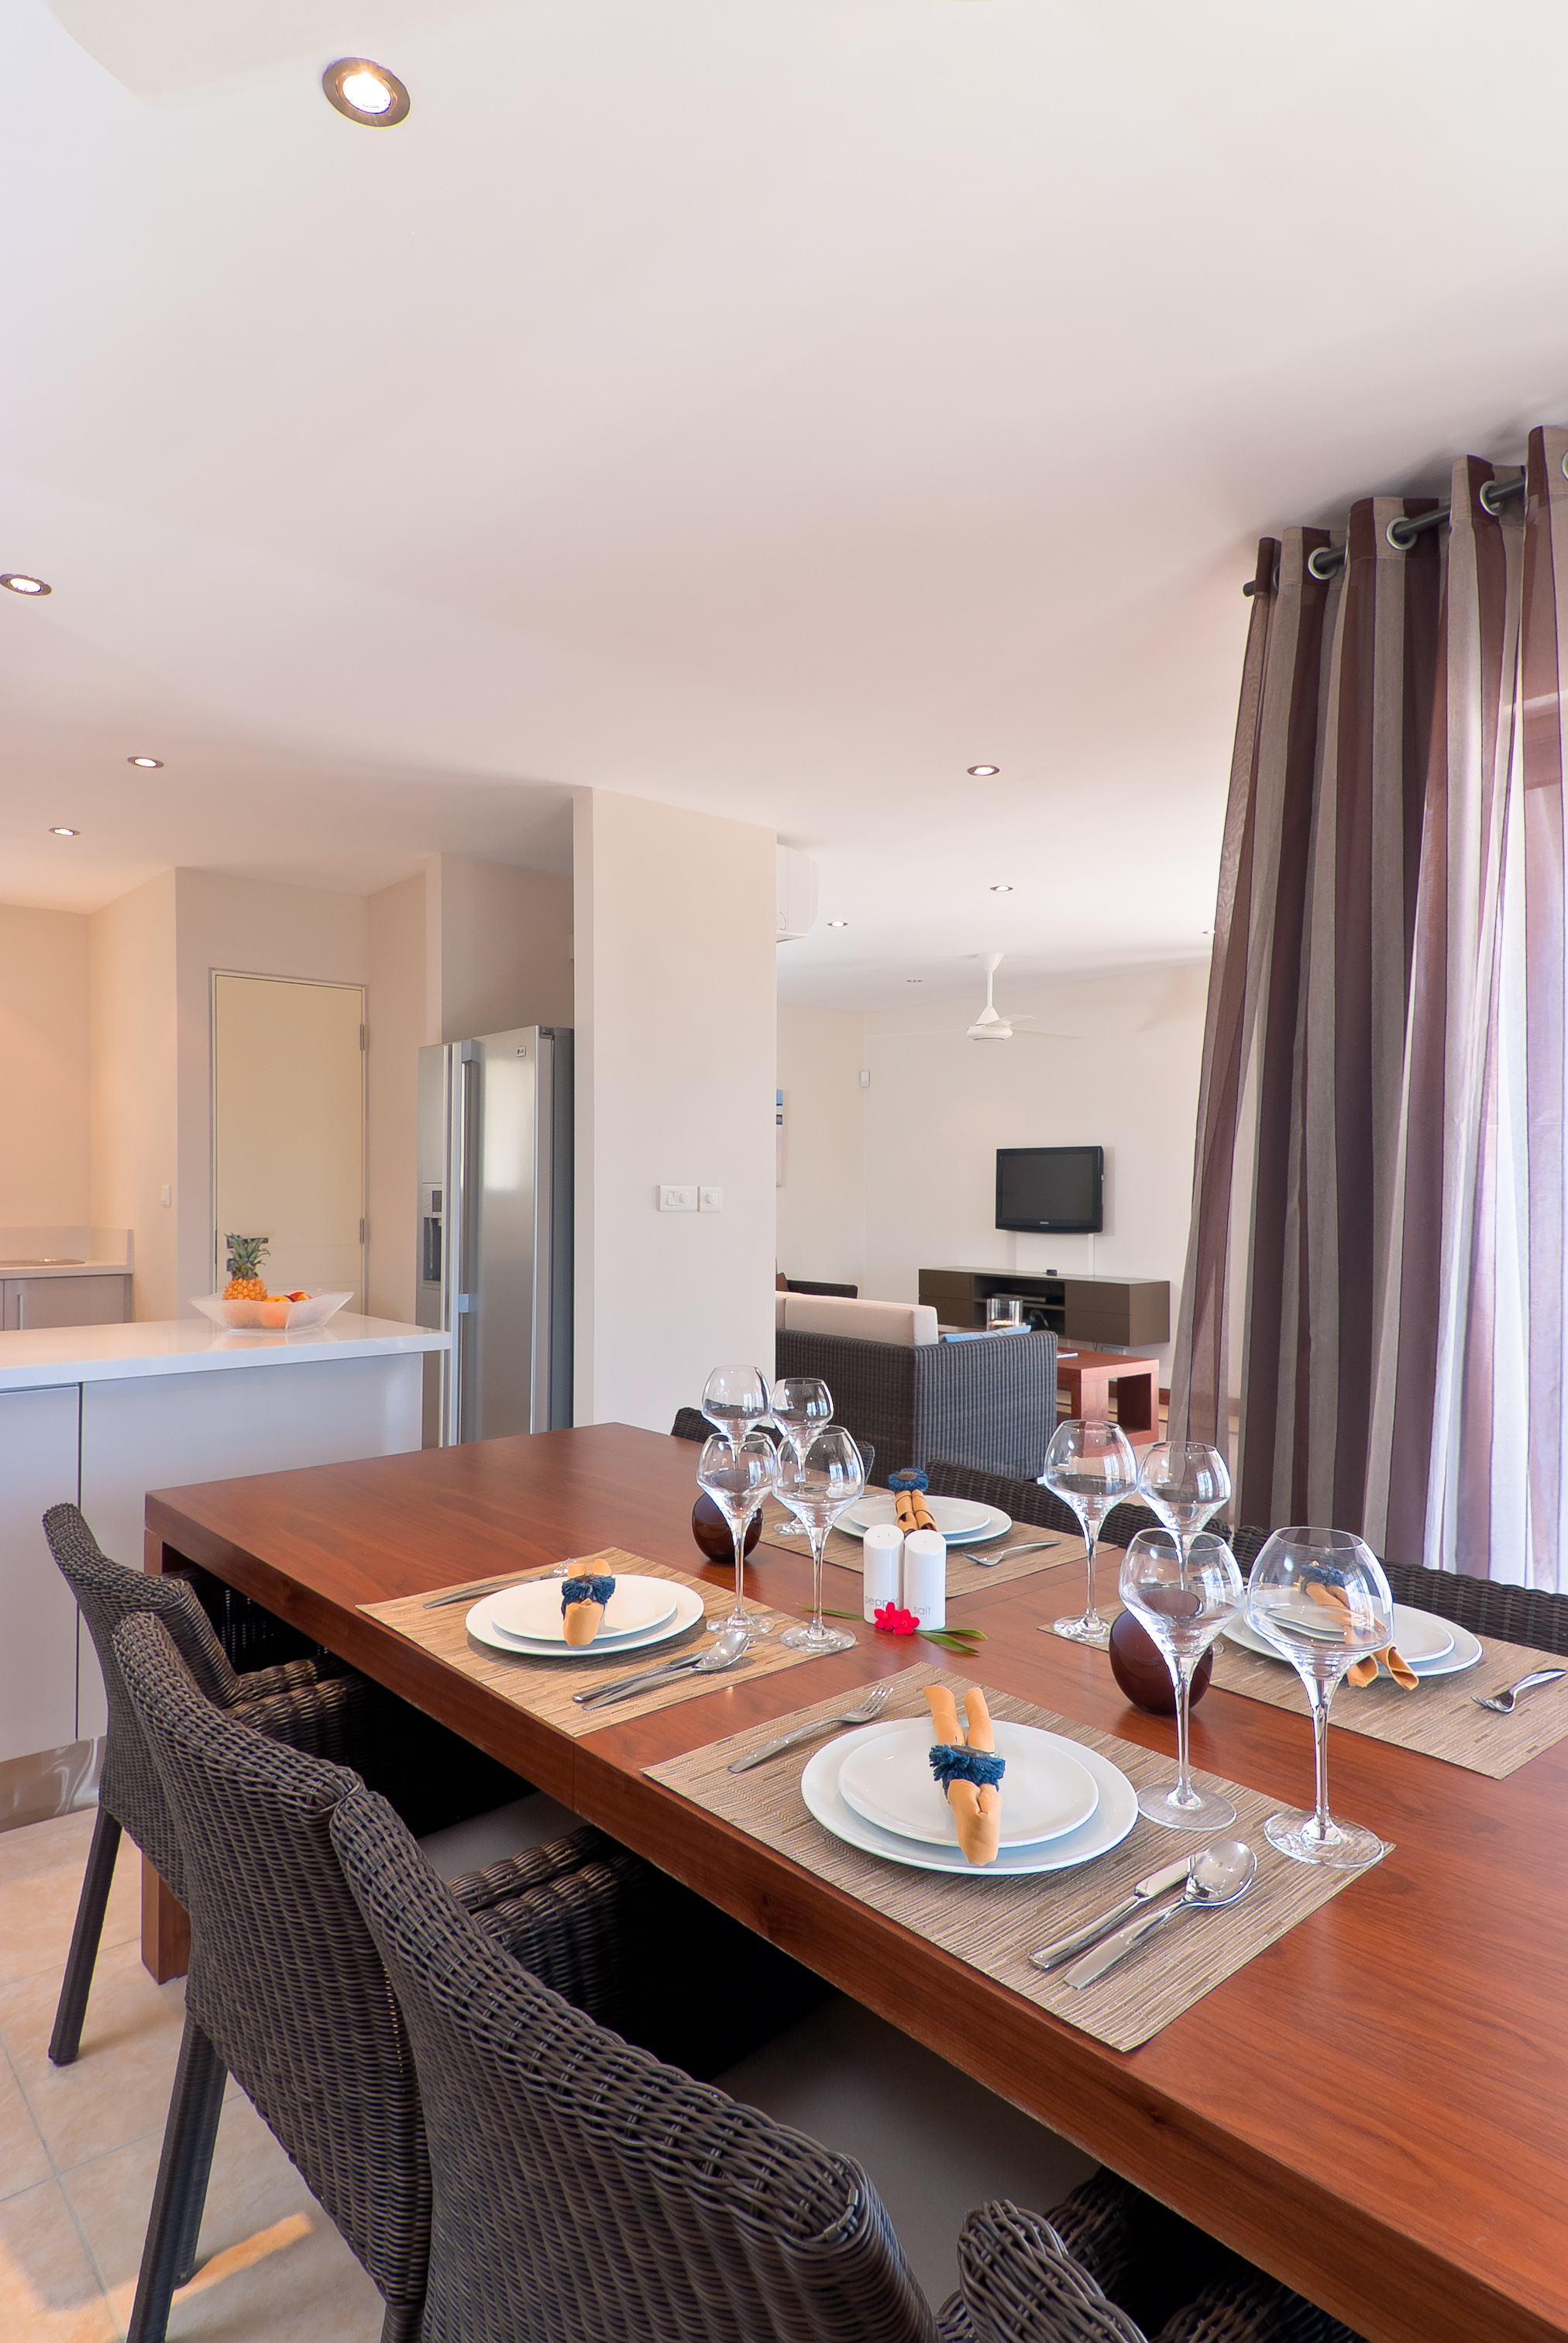 Bon Azur Elegant Suites and Penthouses Fully Euip Kitchen Interior dinning area lounge 2